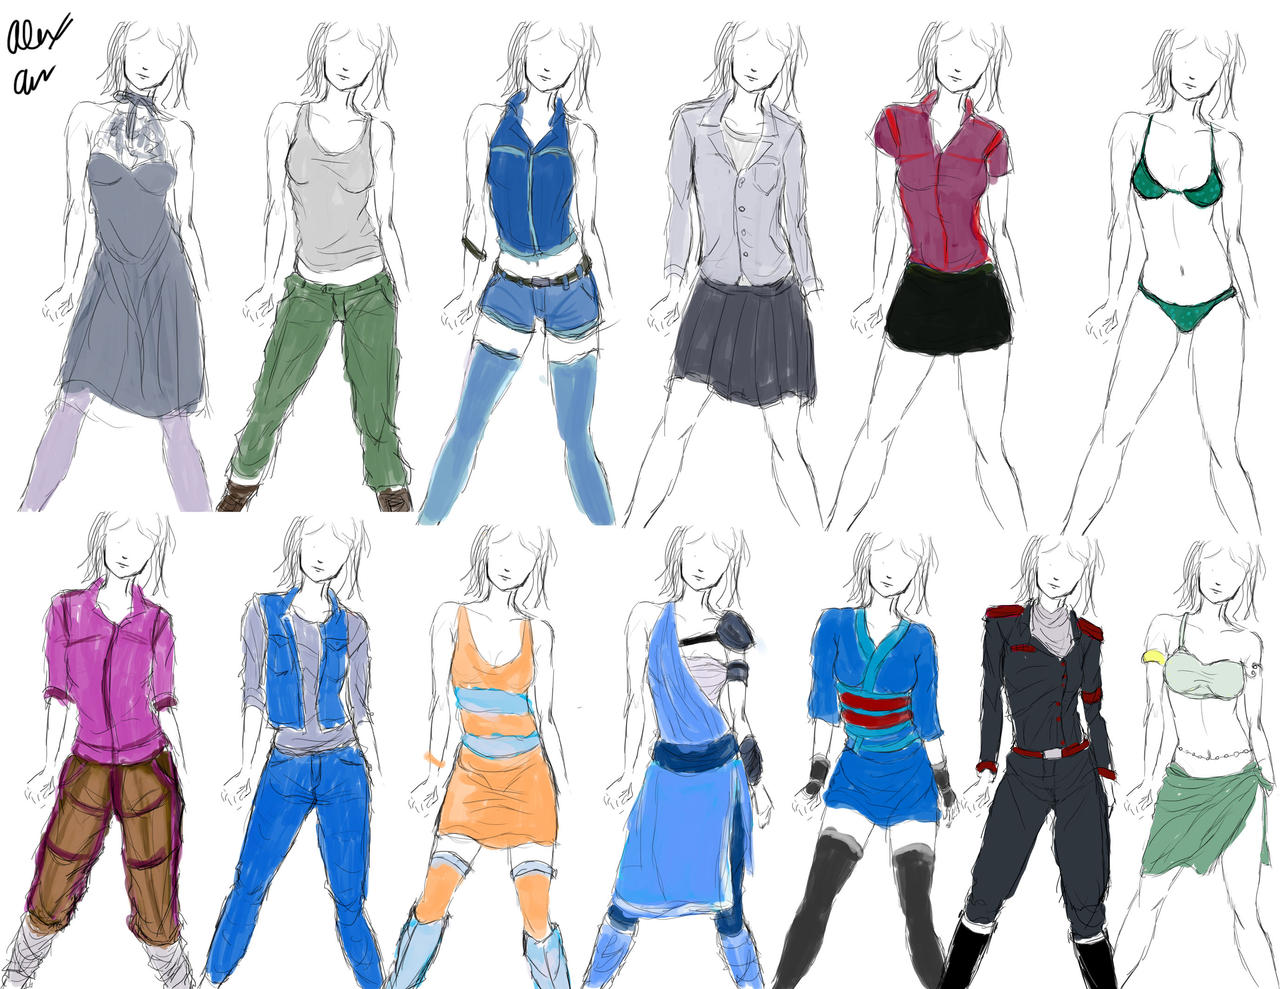 anime clothes designs drawings � hd wallpaper gallery